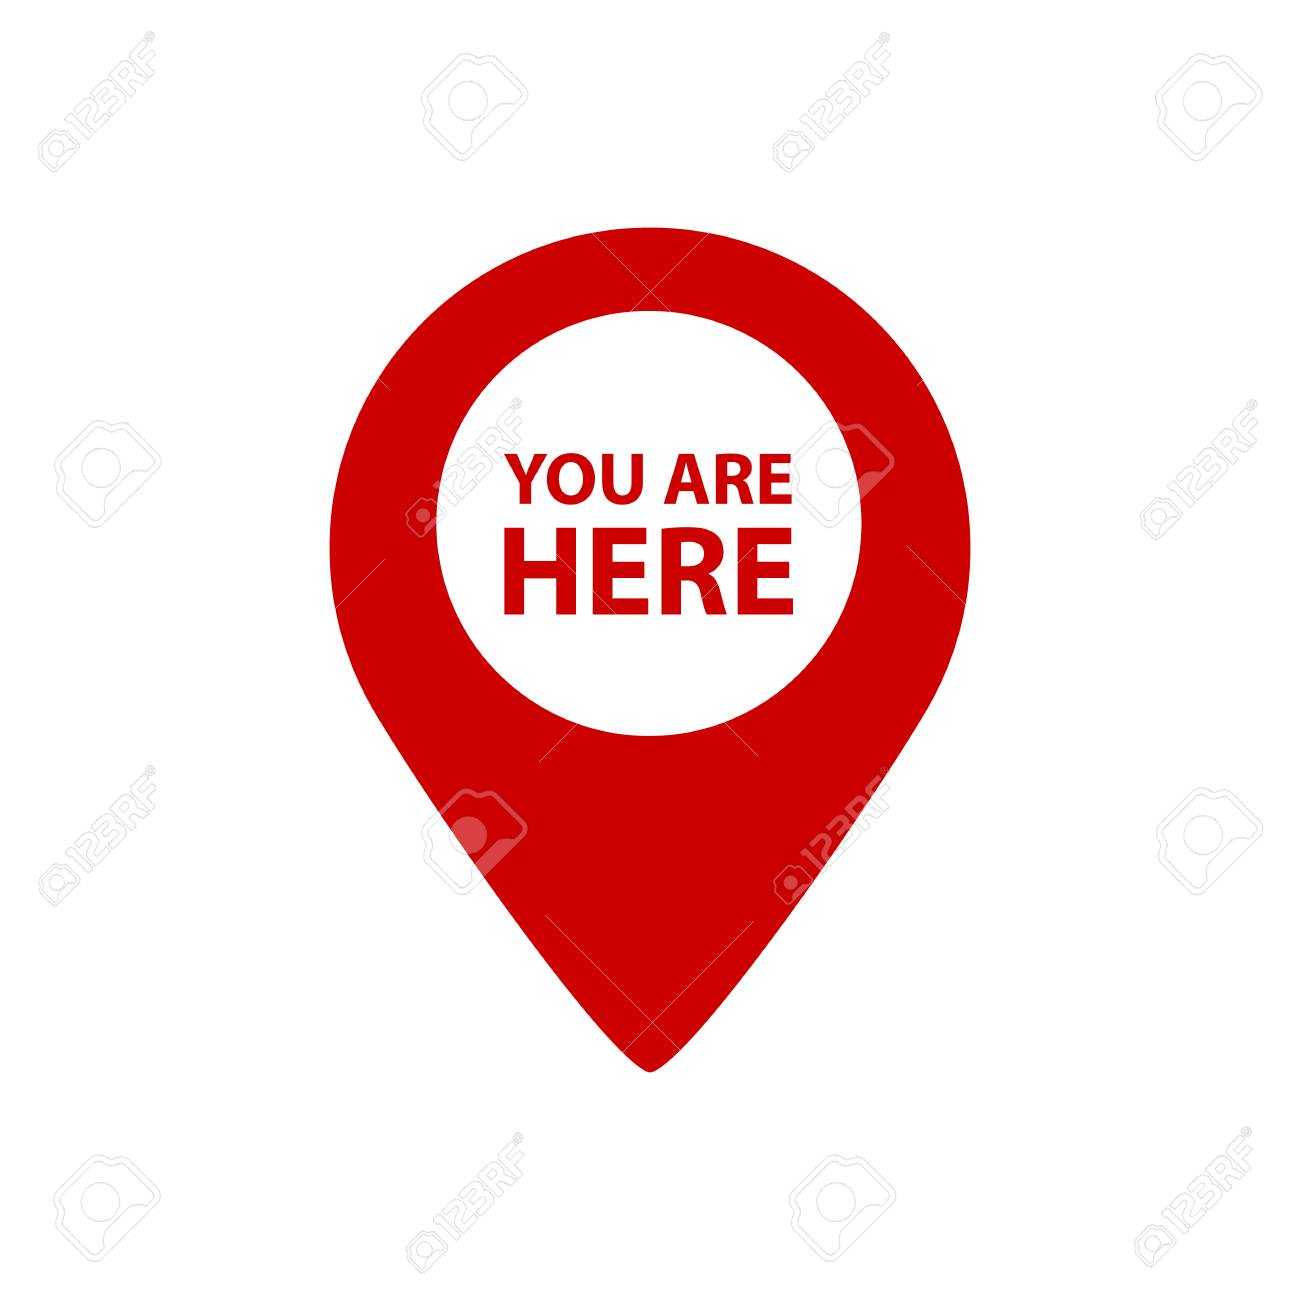 You Are Here Map Pointer - Vector Illustration - Isolated On White Background - 122819546